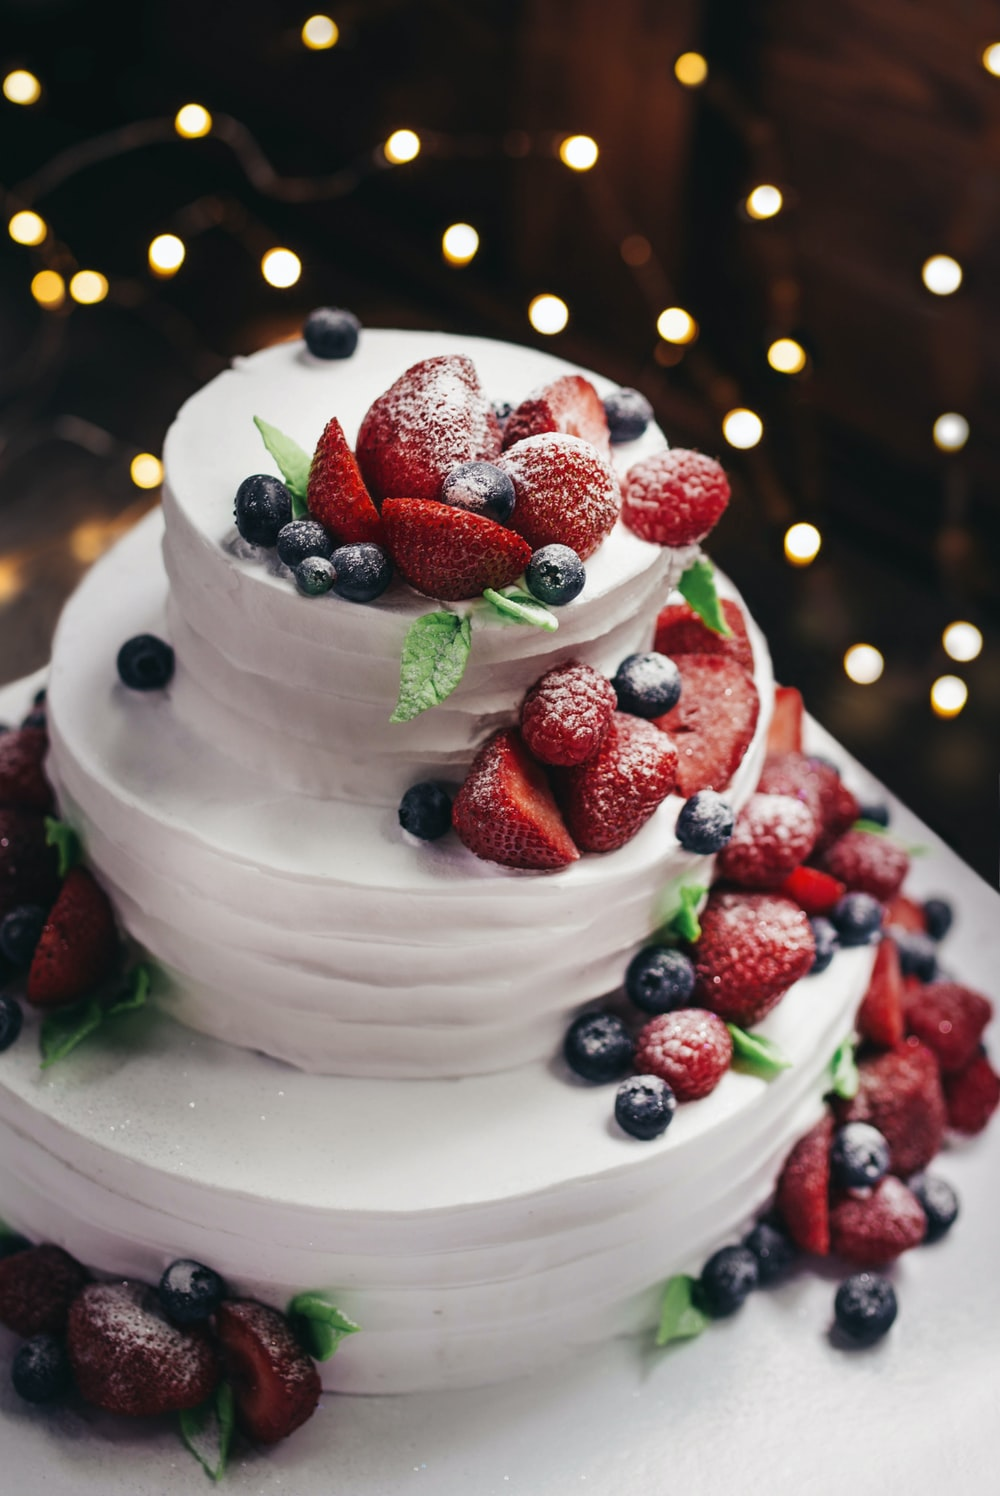 Close Up Photography Of 3 Tier Vanilla Cake With Blueberry And Strawberry Toppings